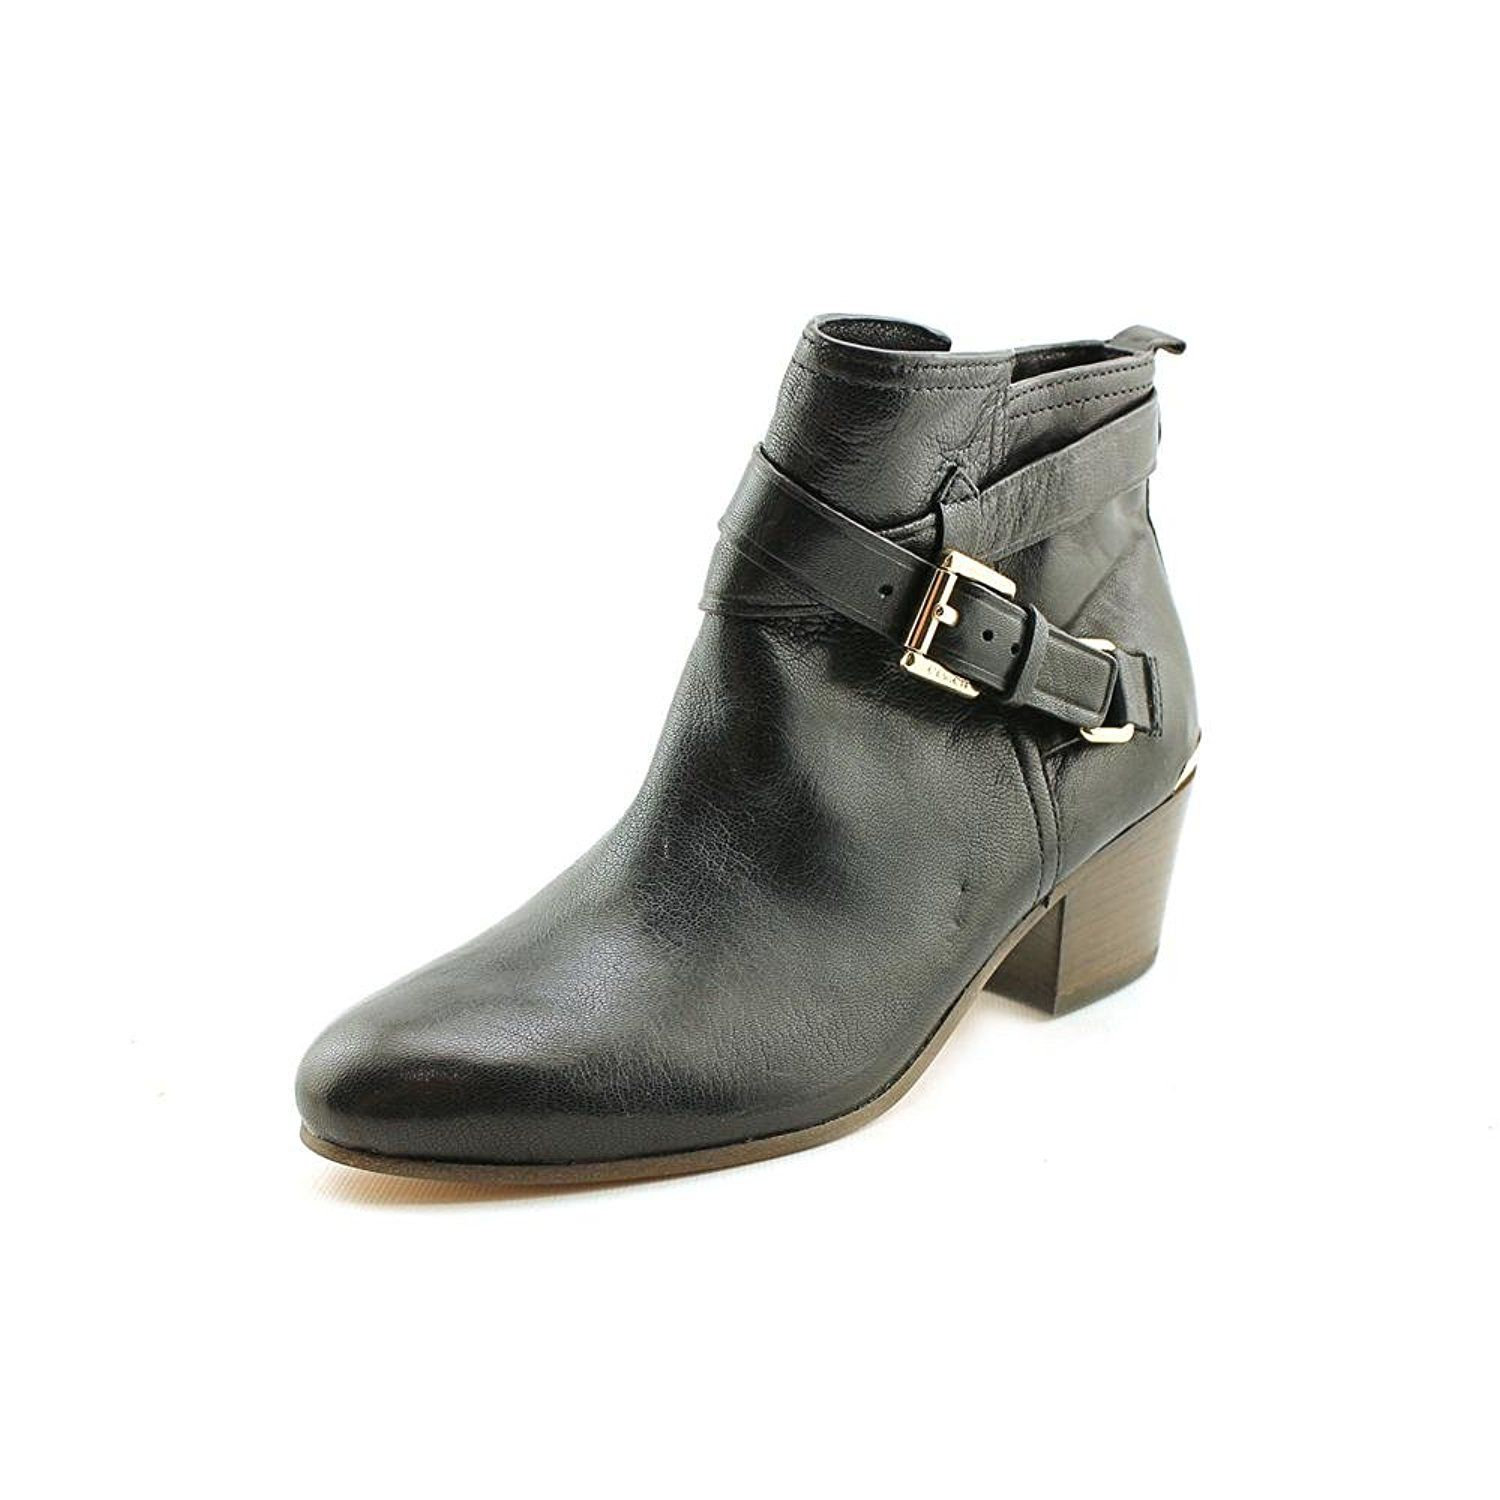 8898365a814 Coach Pauline Womens Size 8.5 Black Leather Fashion Ankle Boots ...